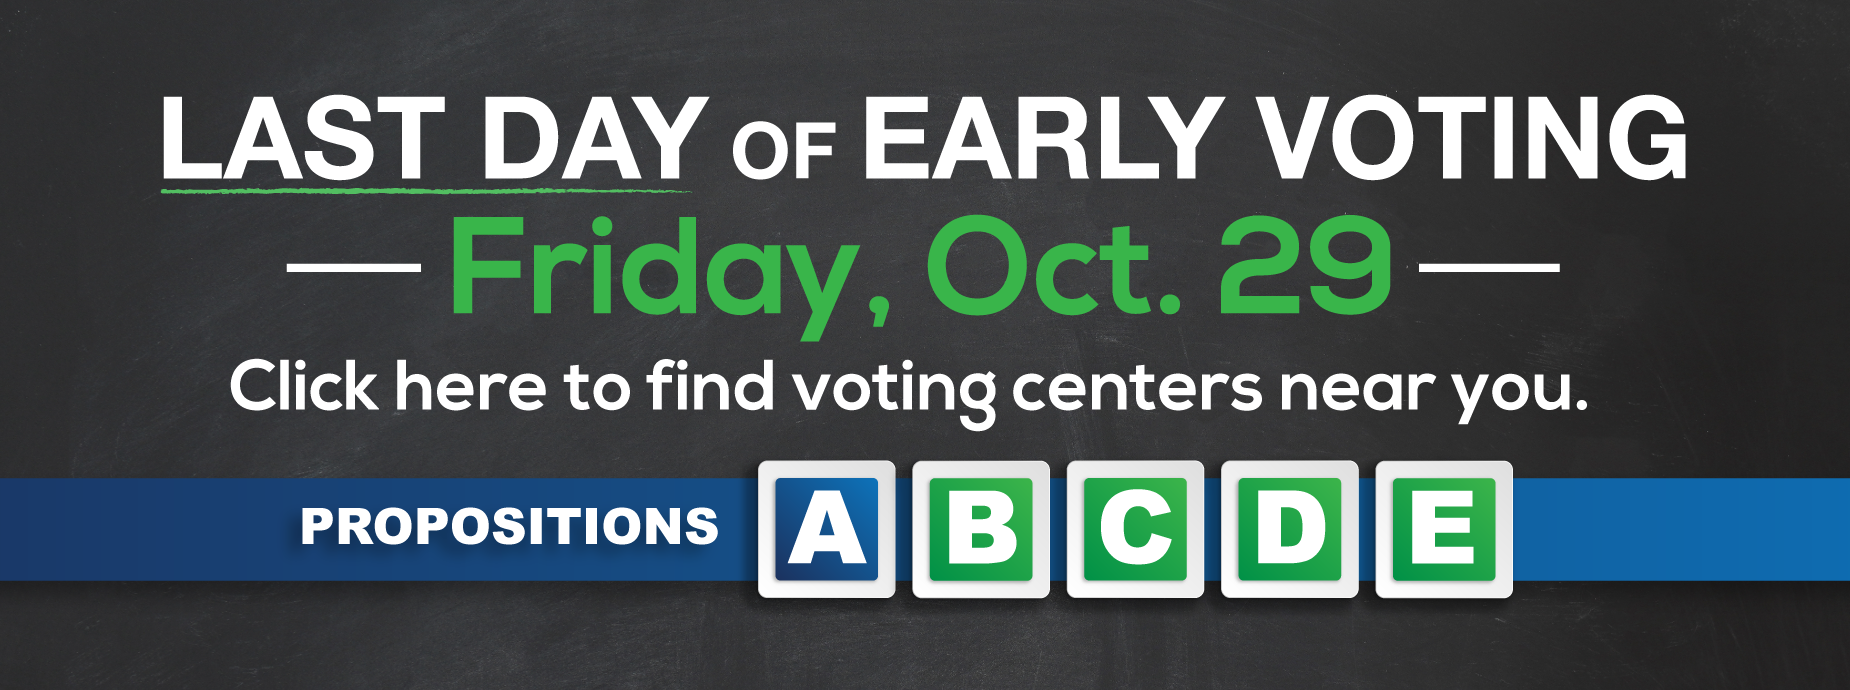 Last day of early voting Oct 29